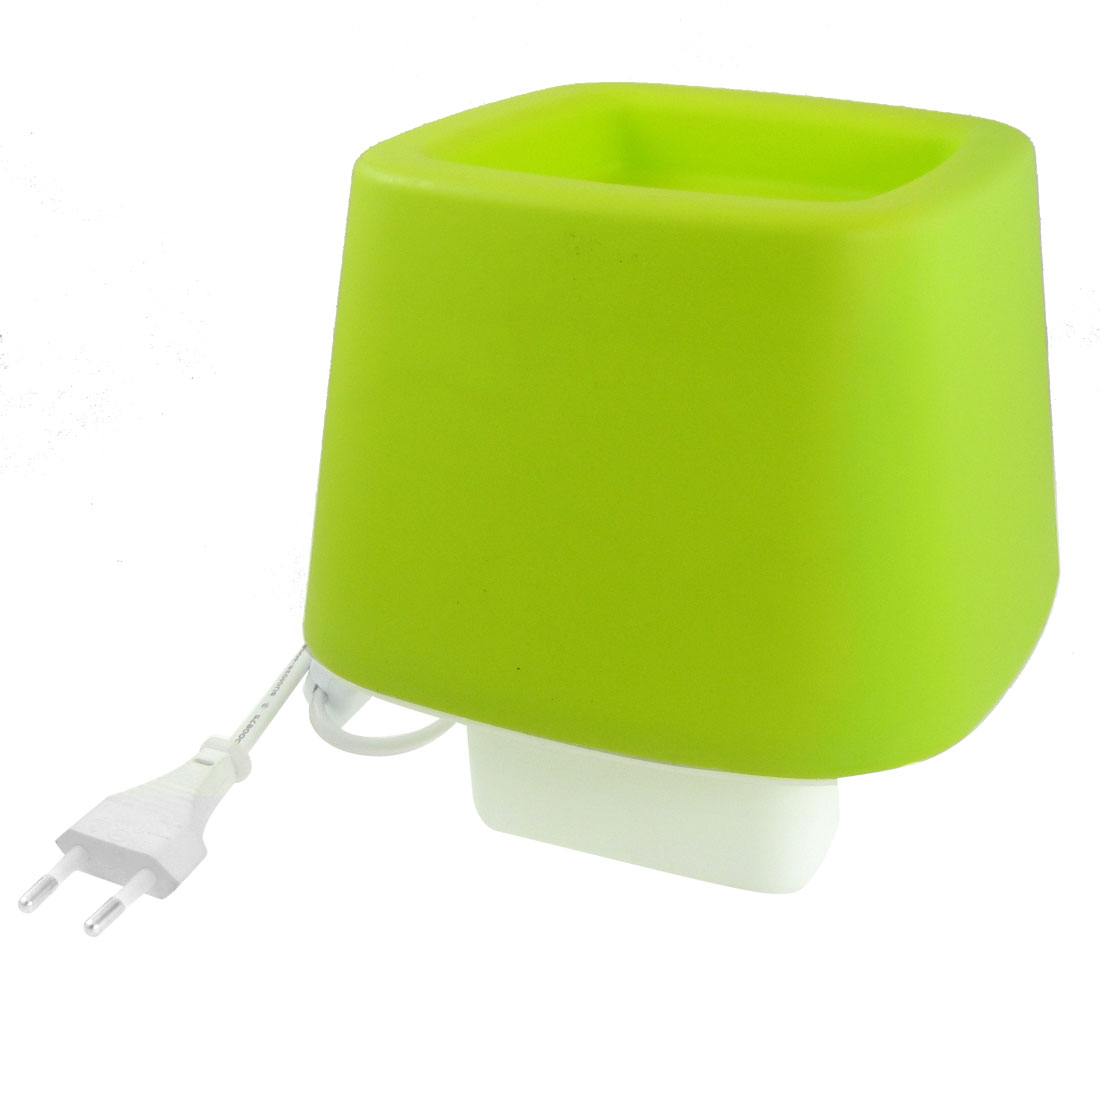 EU Plug AC 110-220V Home White Plastic Base Green Cover Desk Lamp Decoration